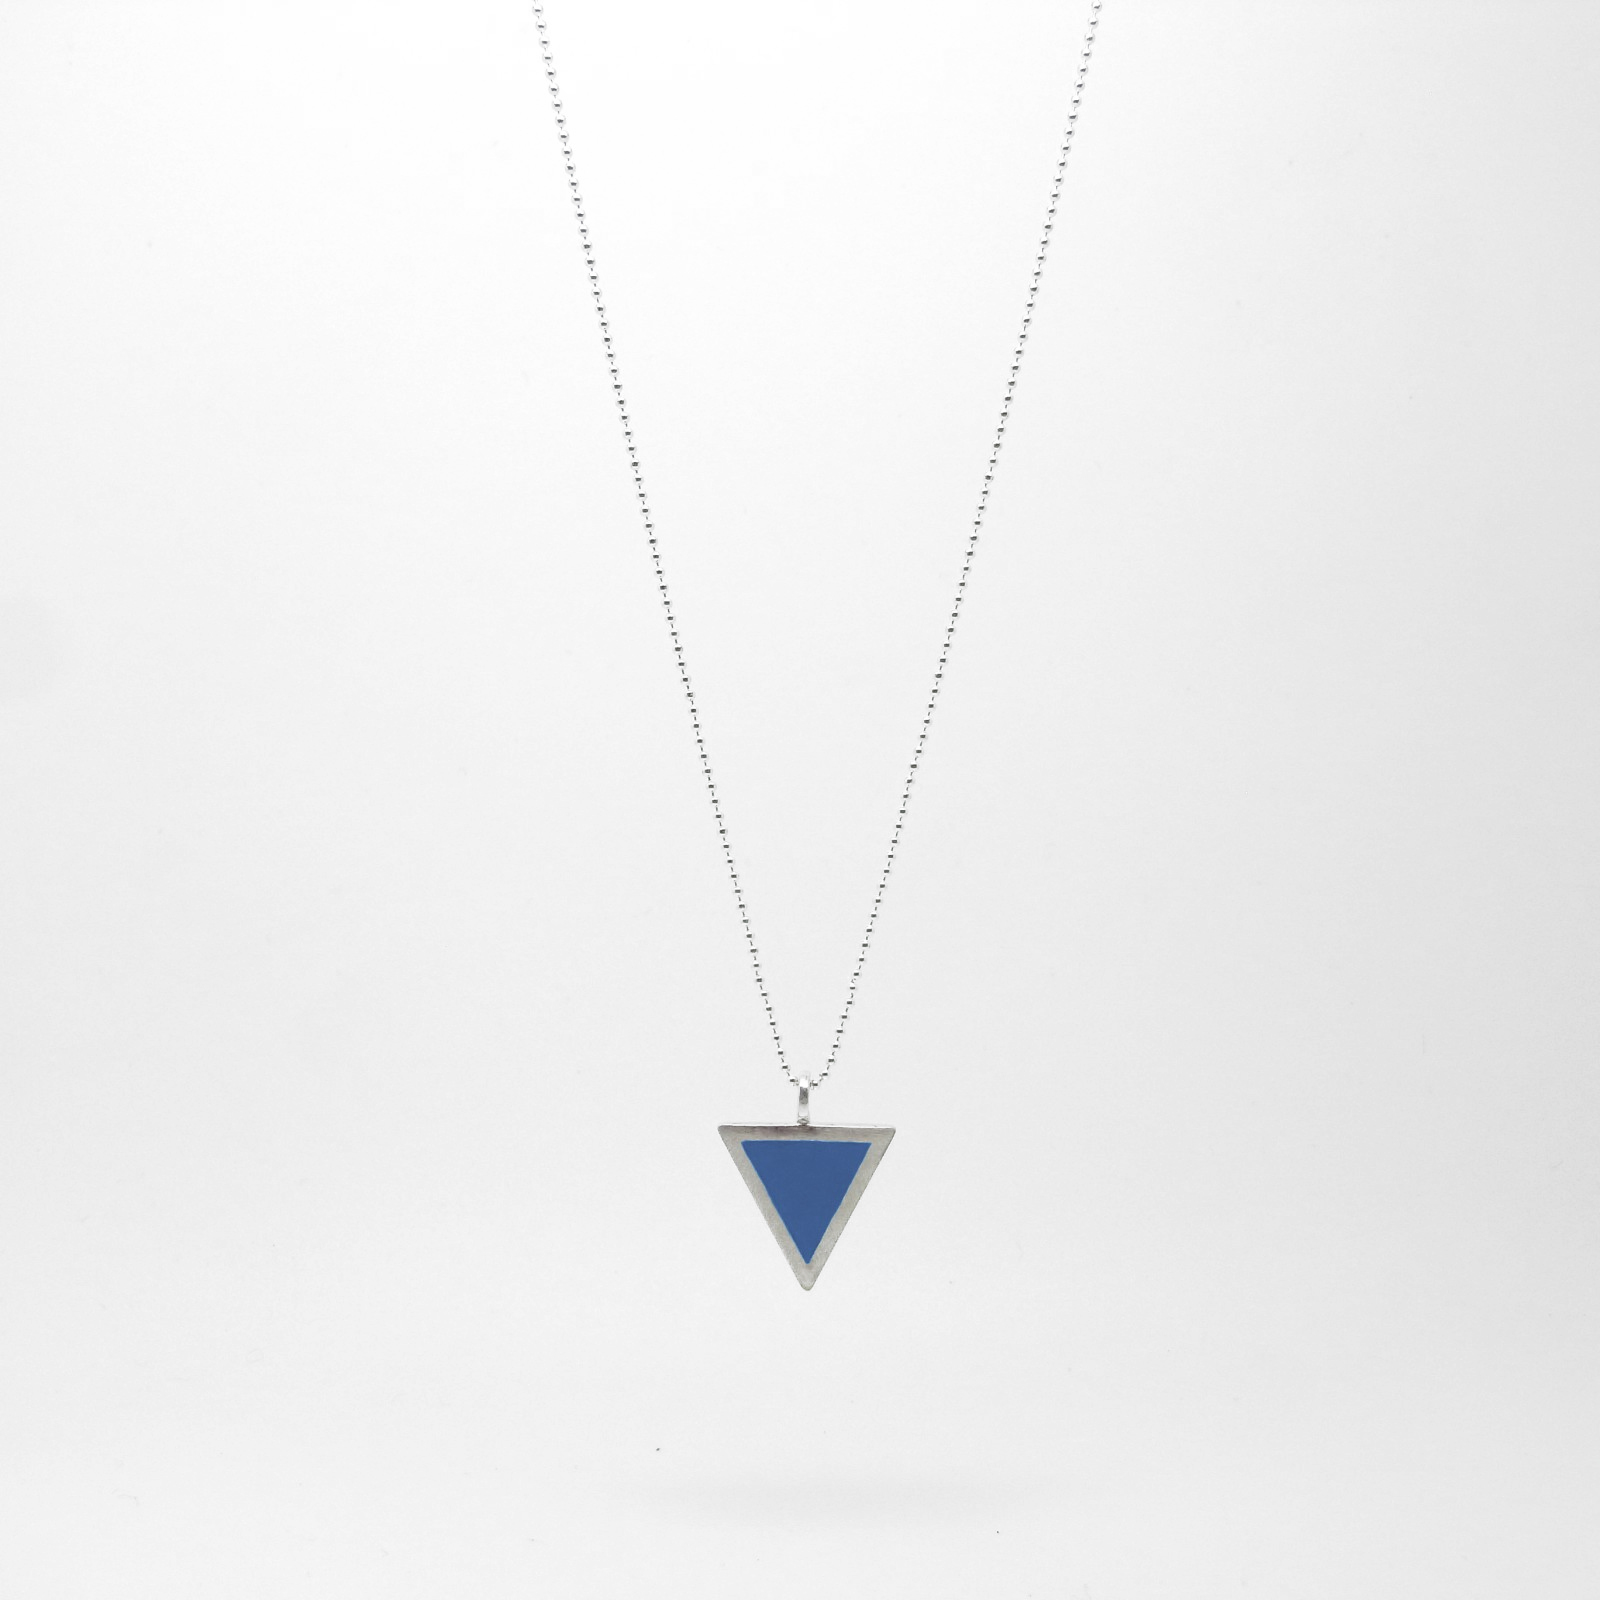 Triangle Necklace Medium Blue